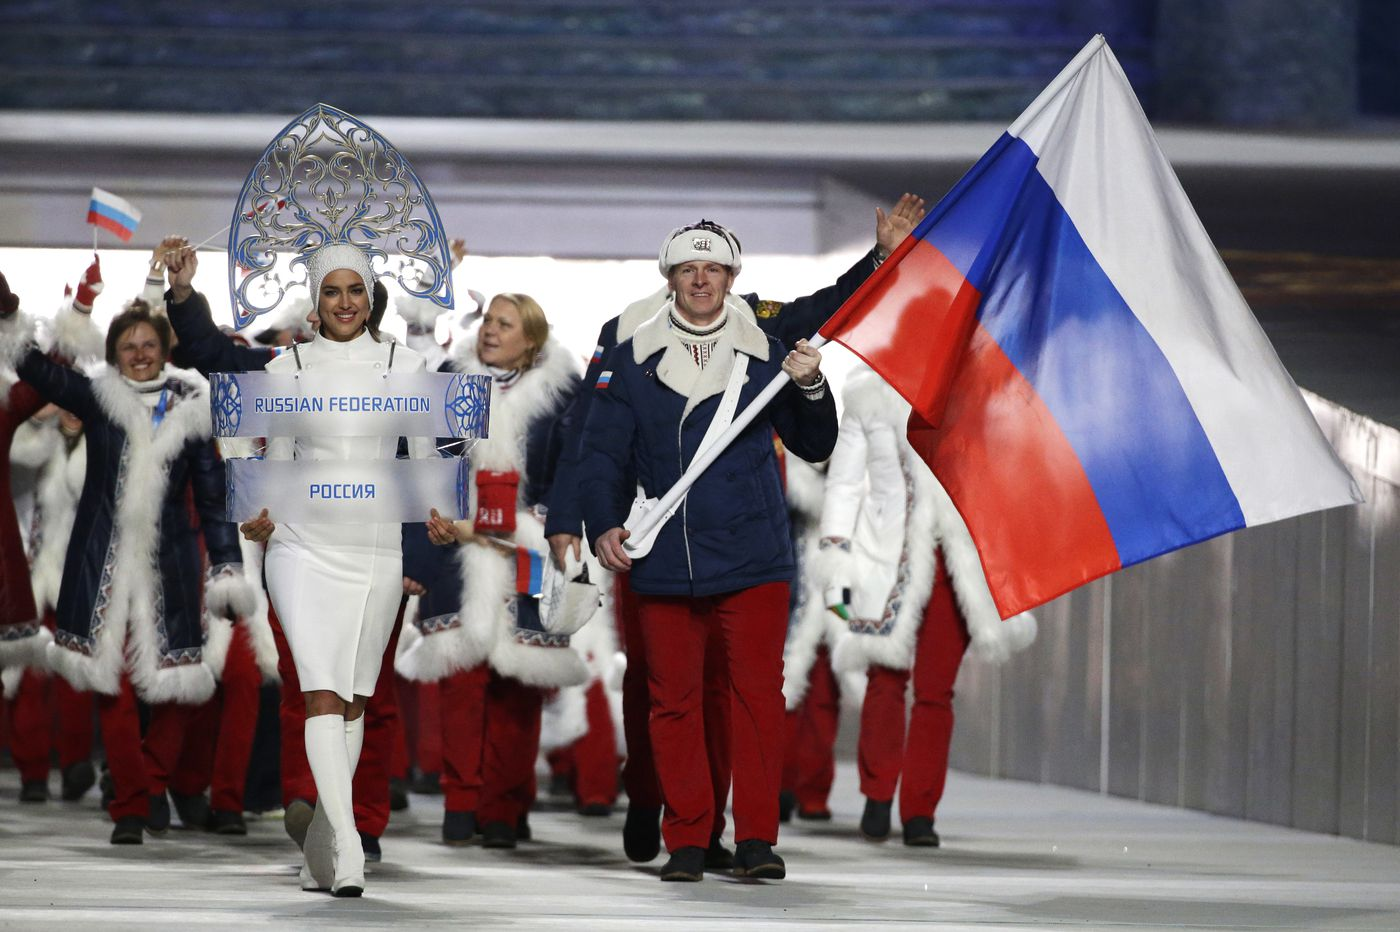 World Anti-Doping Agency imposes 4-year ban on Russia, including 2 Olympics